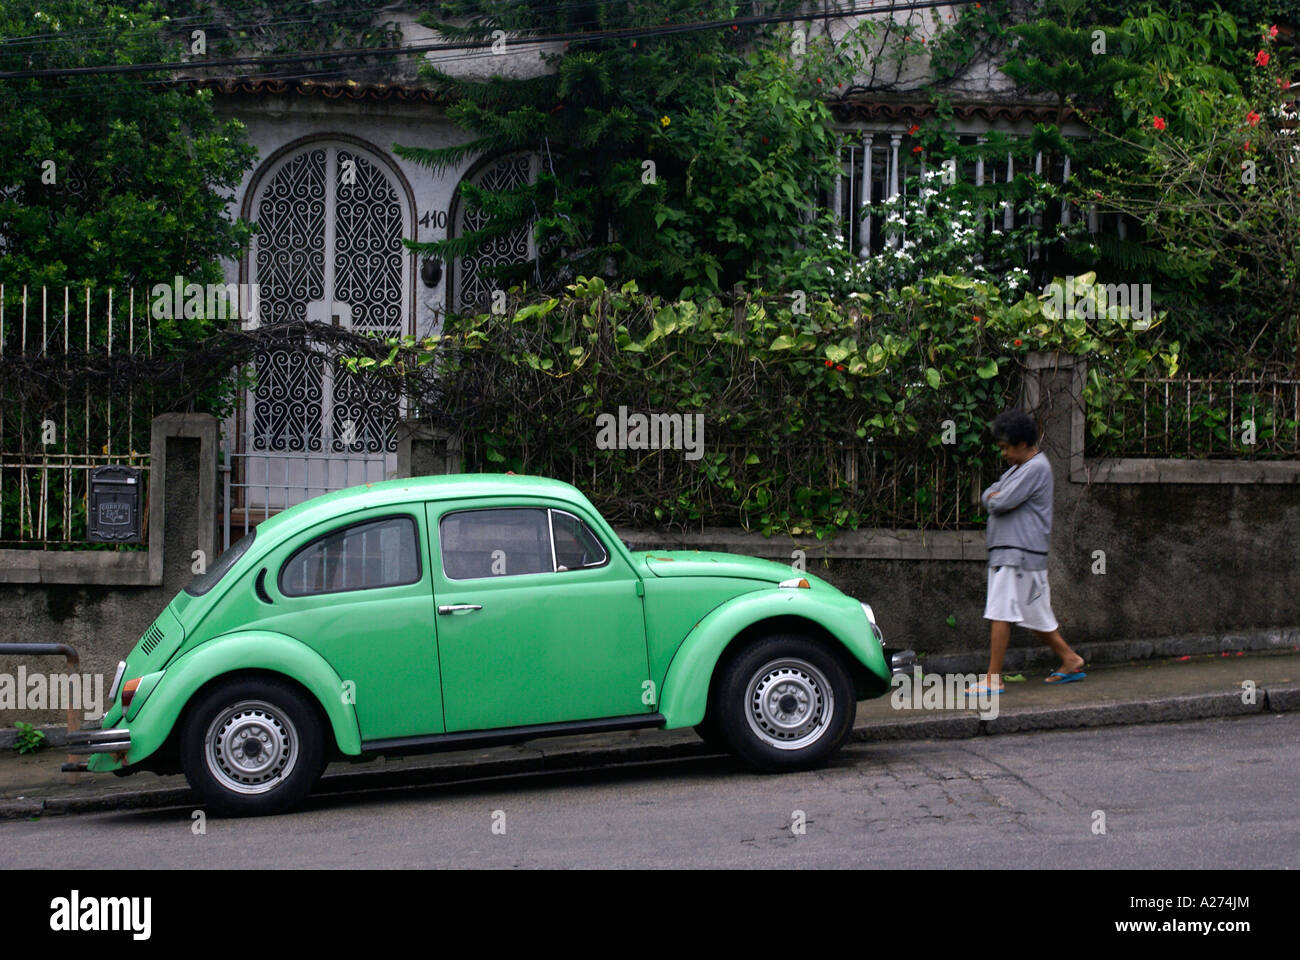 old green beetle vw volkswagen stockfotos old green beetle vw volkswagen bilder alamy. Black Bedroom Furniture Sets. Home Design Ideas